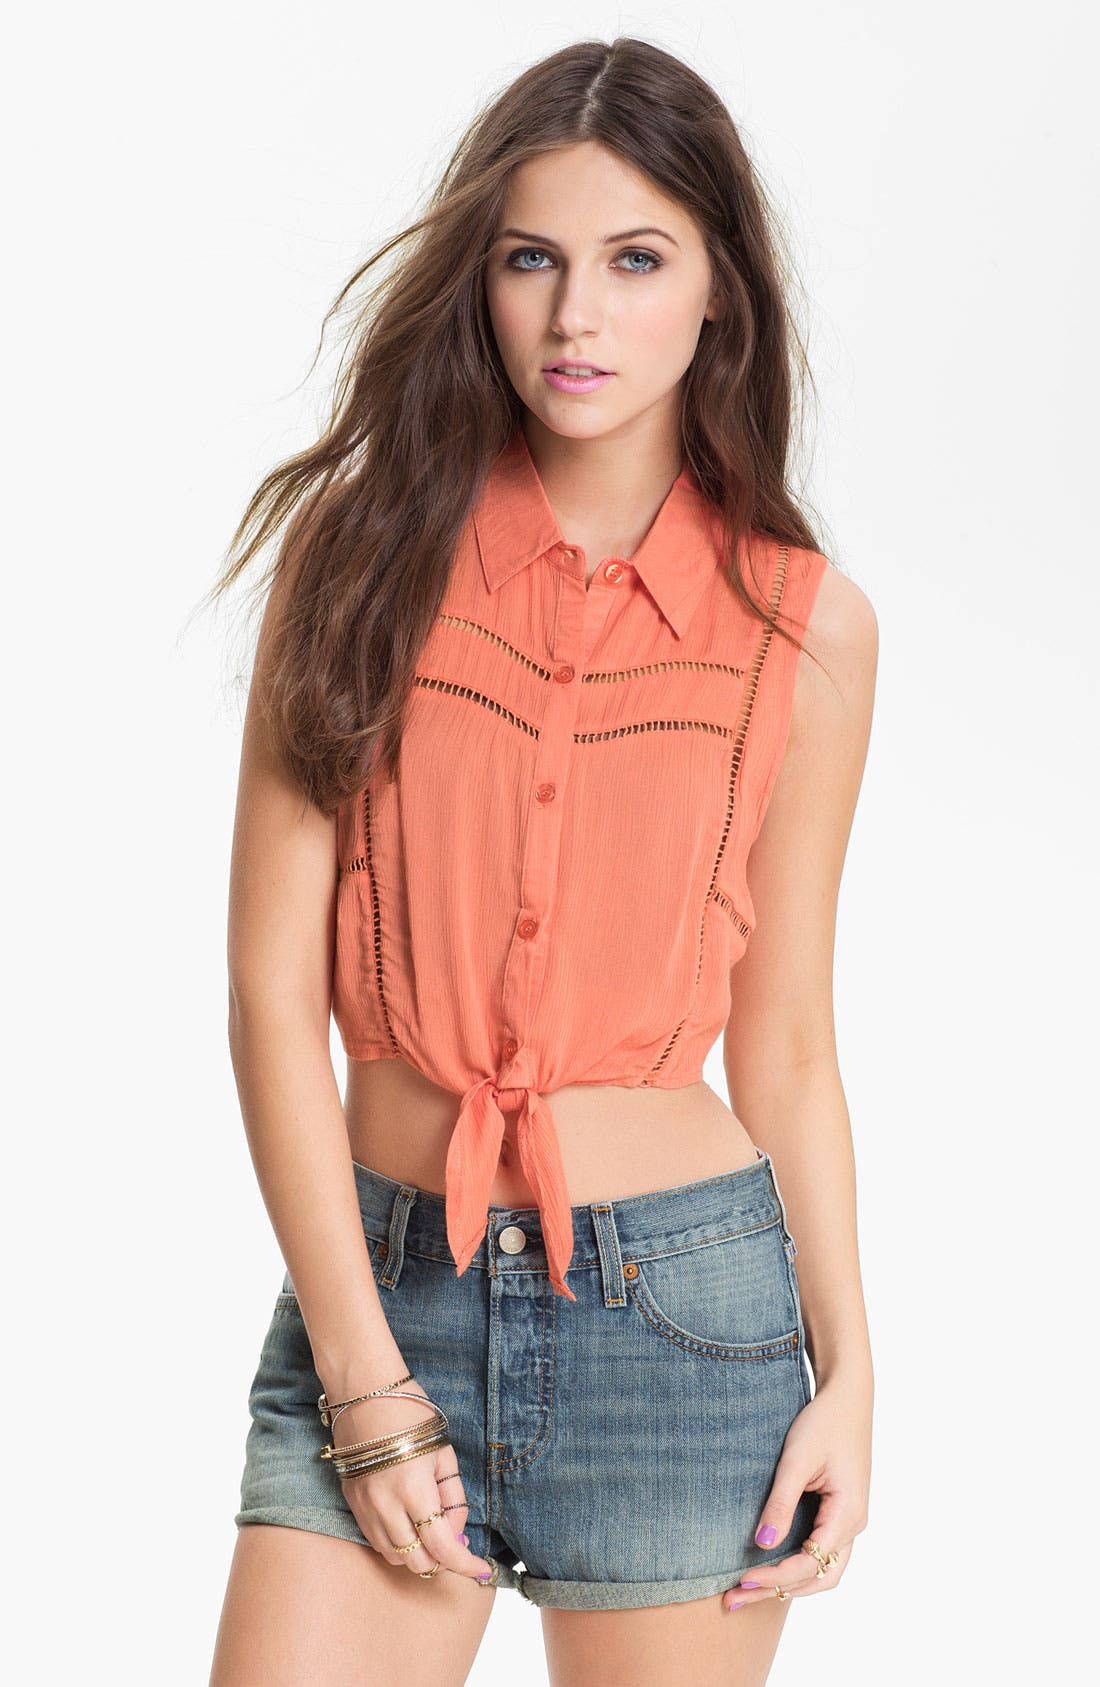 Alternate Image 1 Selected - Lush Crochet Trim Tie Front Top (Juniors) (Online Only)